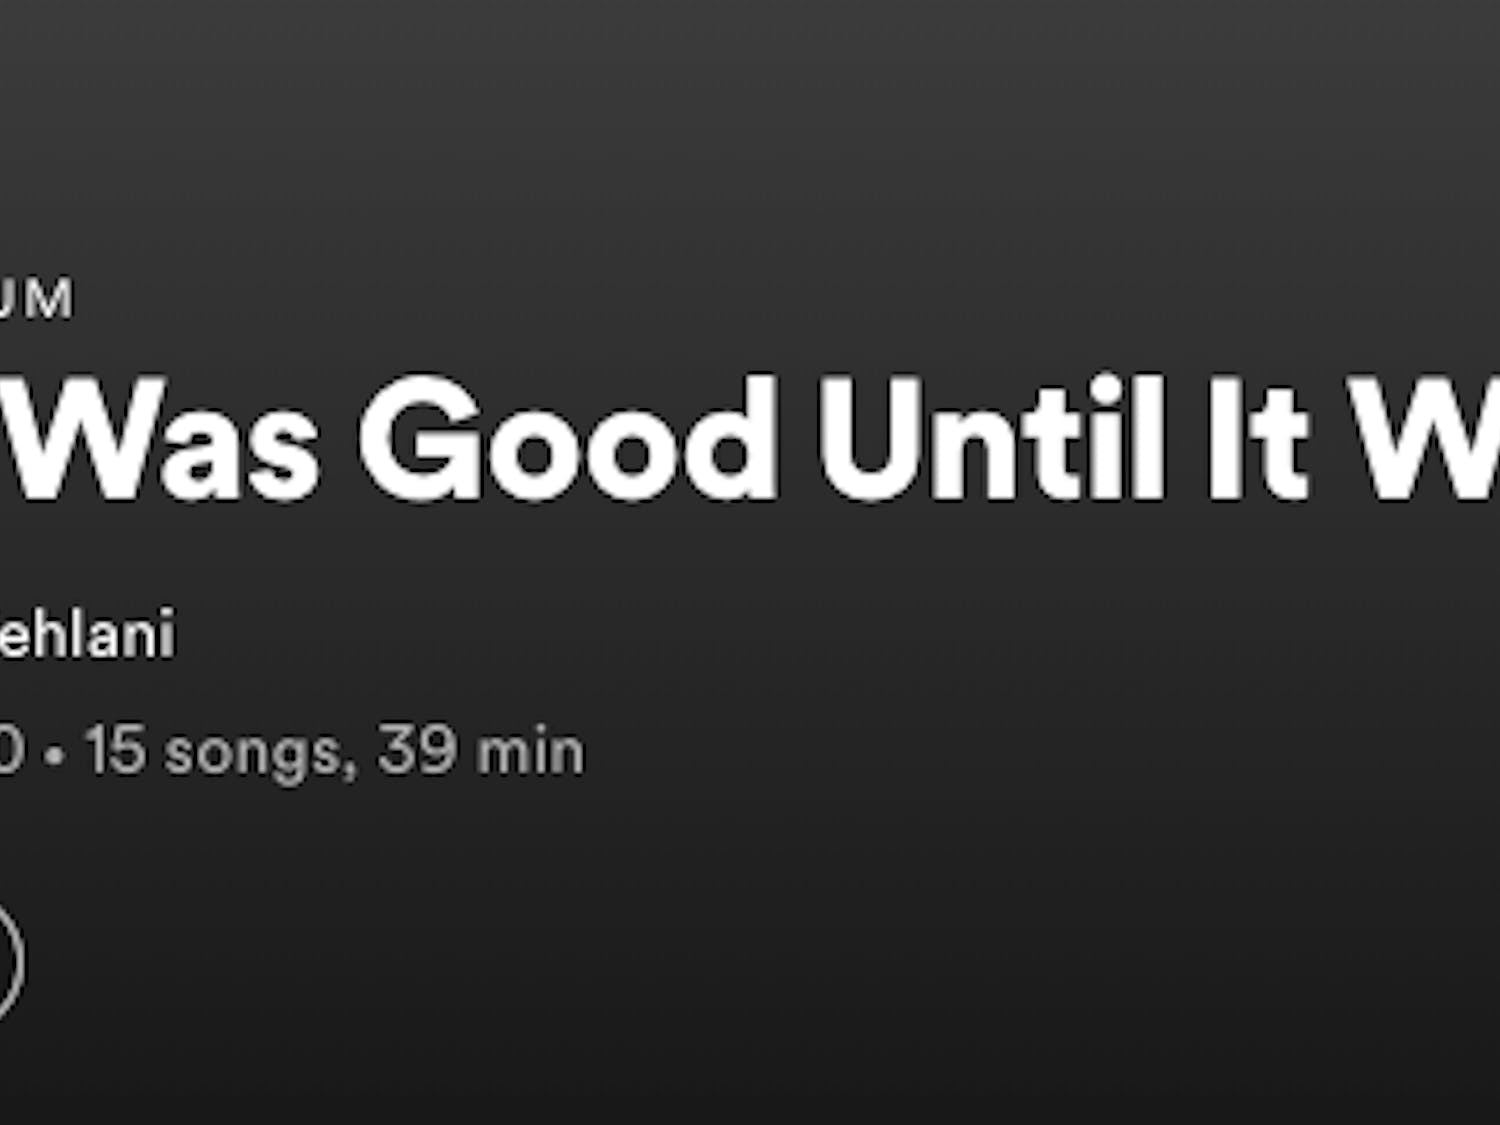 These songs aren't for functional relationships, they're the soundtrack to breaking quarantine to go see someone you shouldn't.